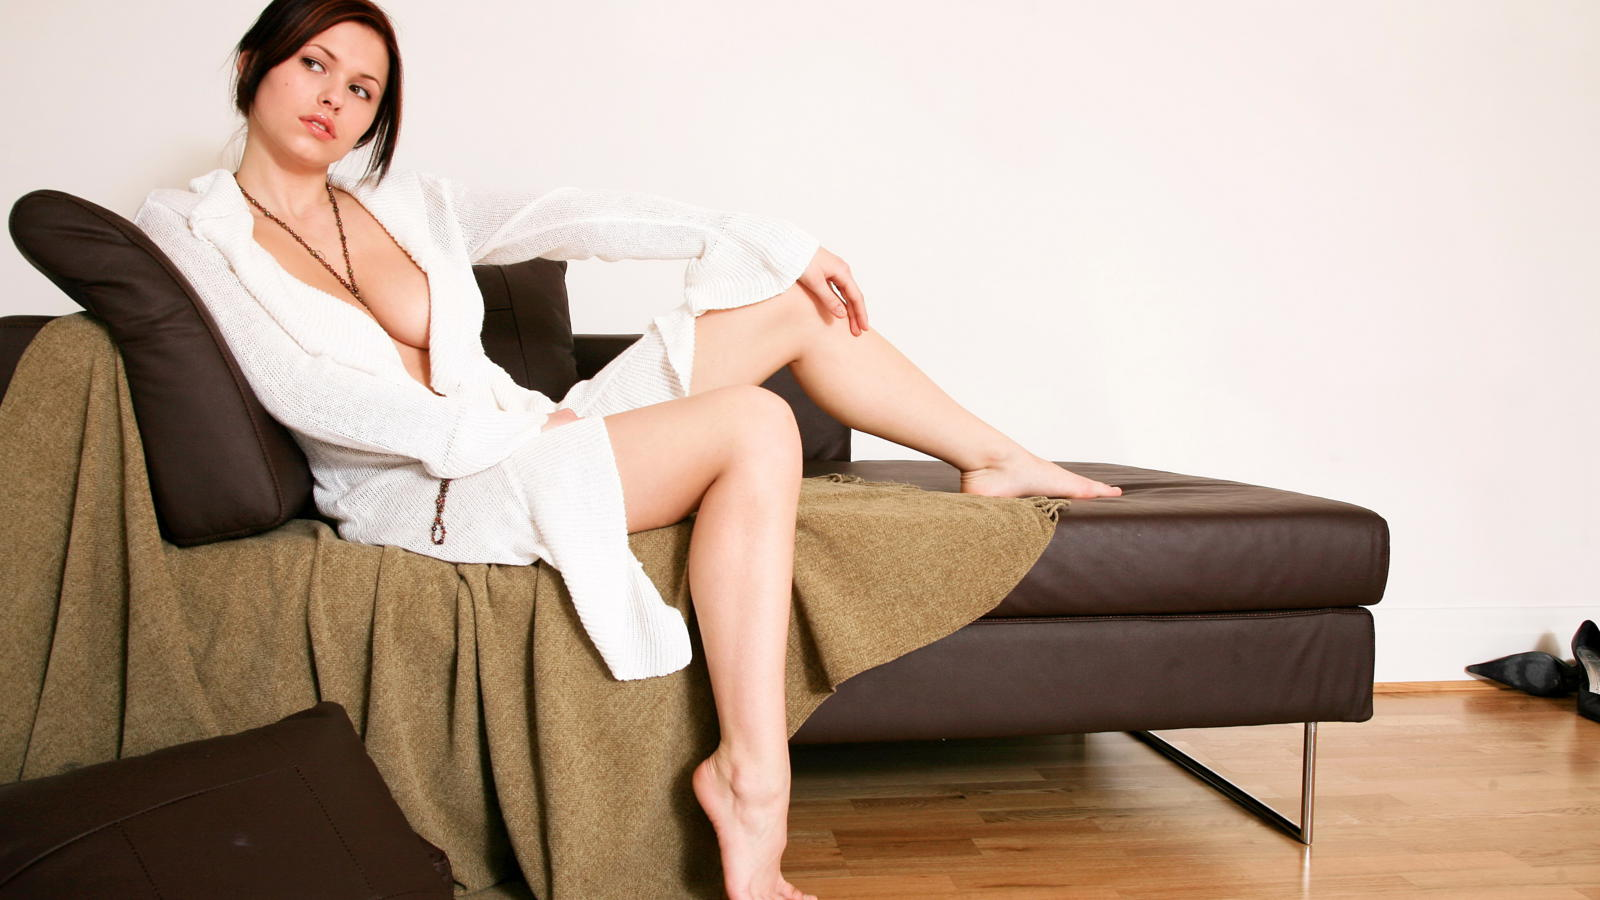 Download photo 1600x900, iga wyrwal, model, cute, couch